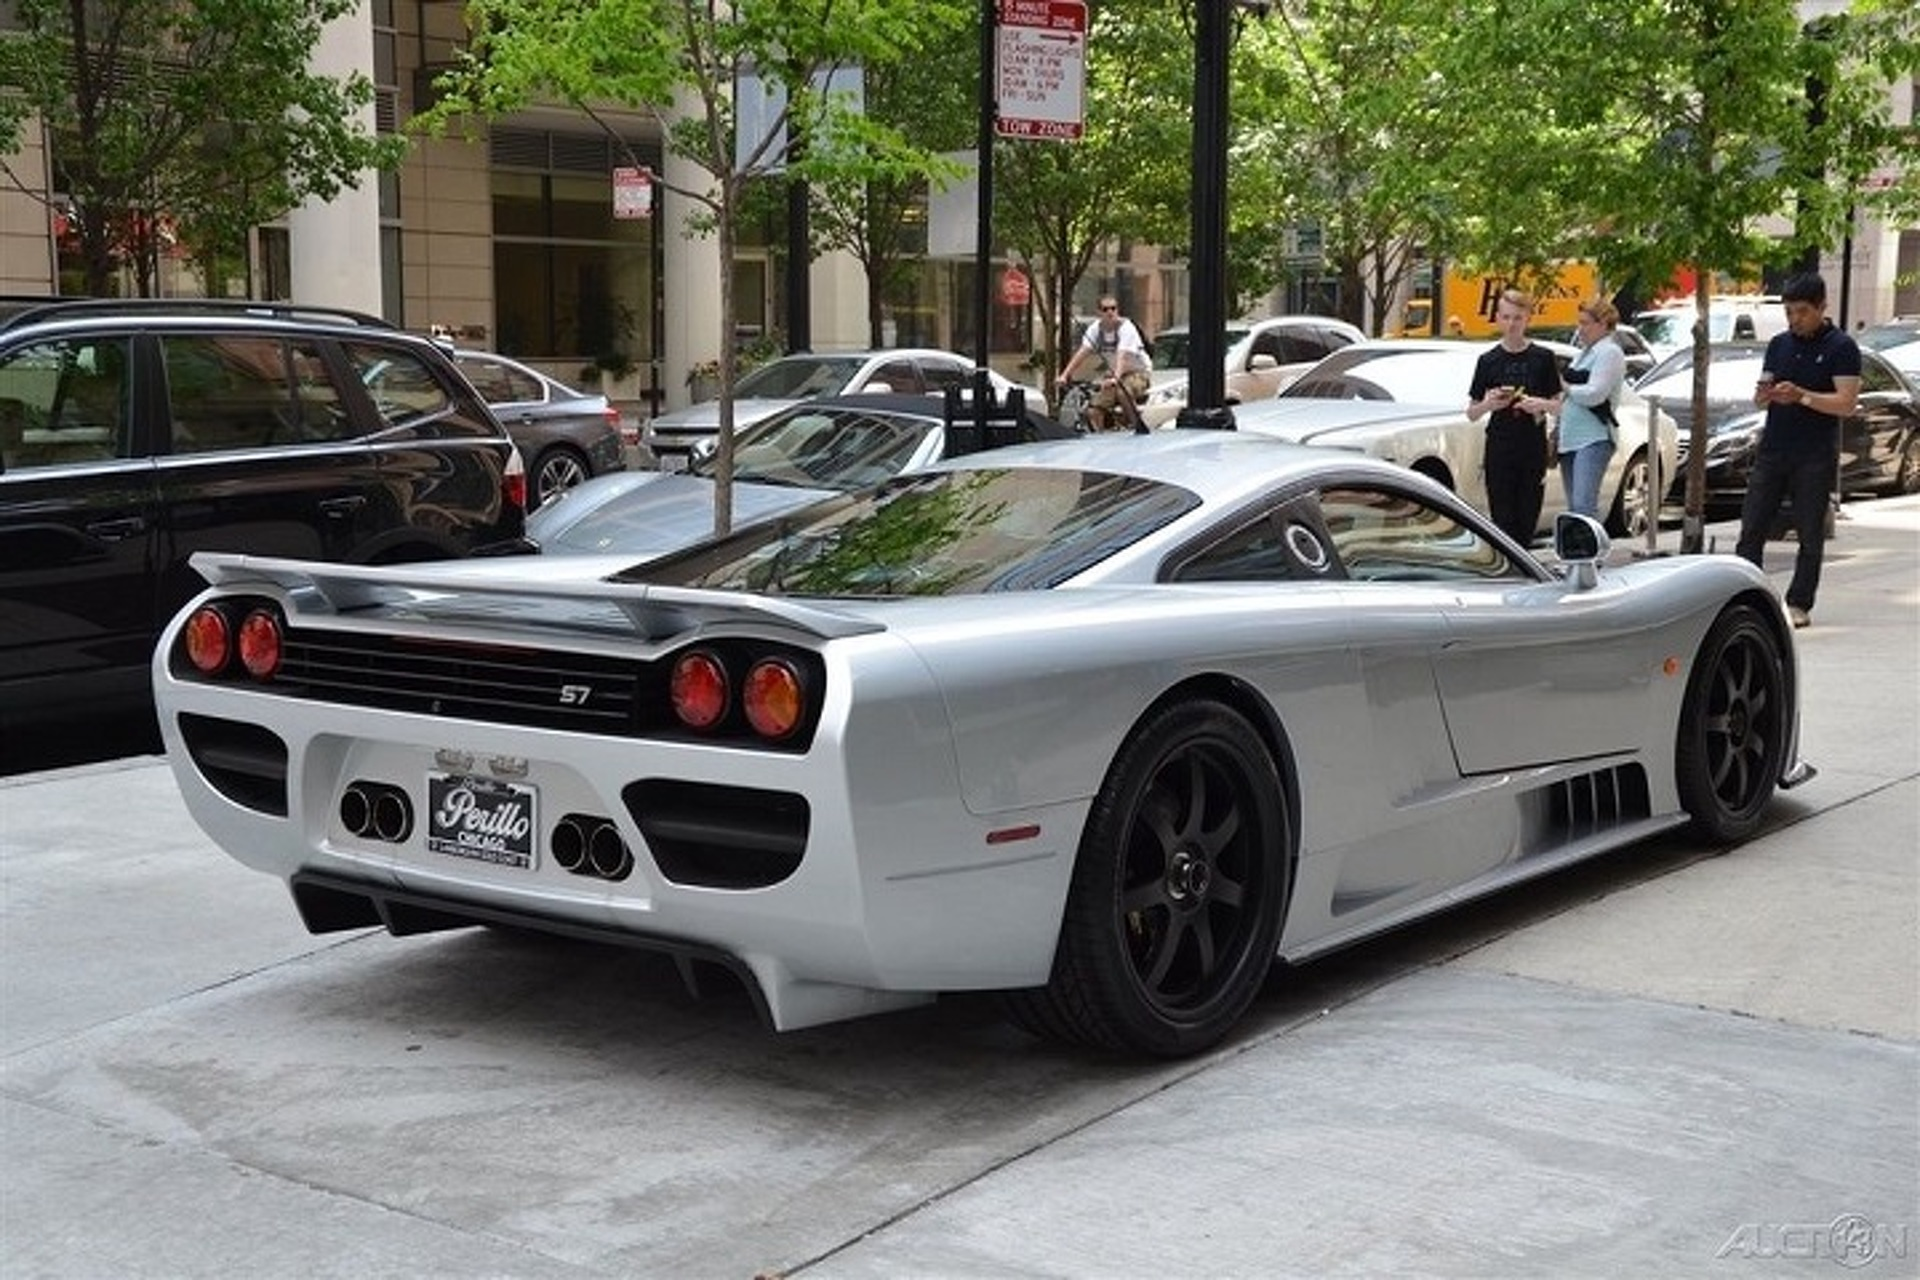 Stunning Saleen S7 Signed by Steve Saleen Hits the Used Market